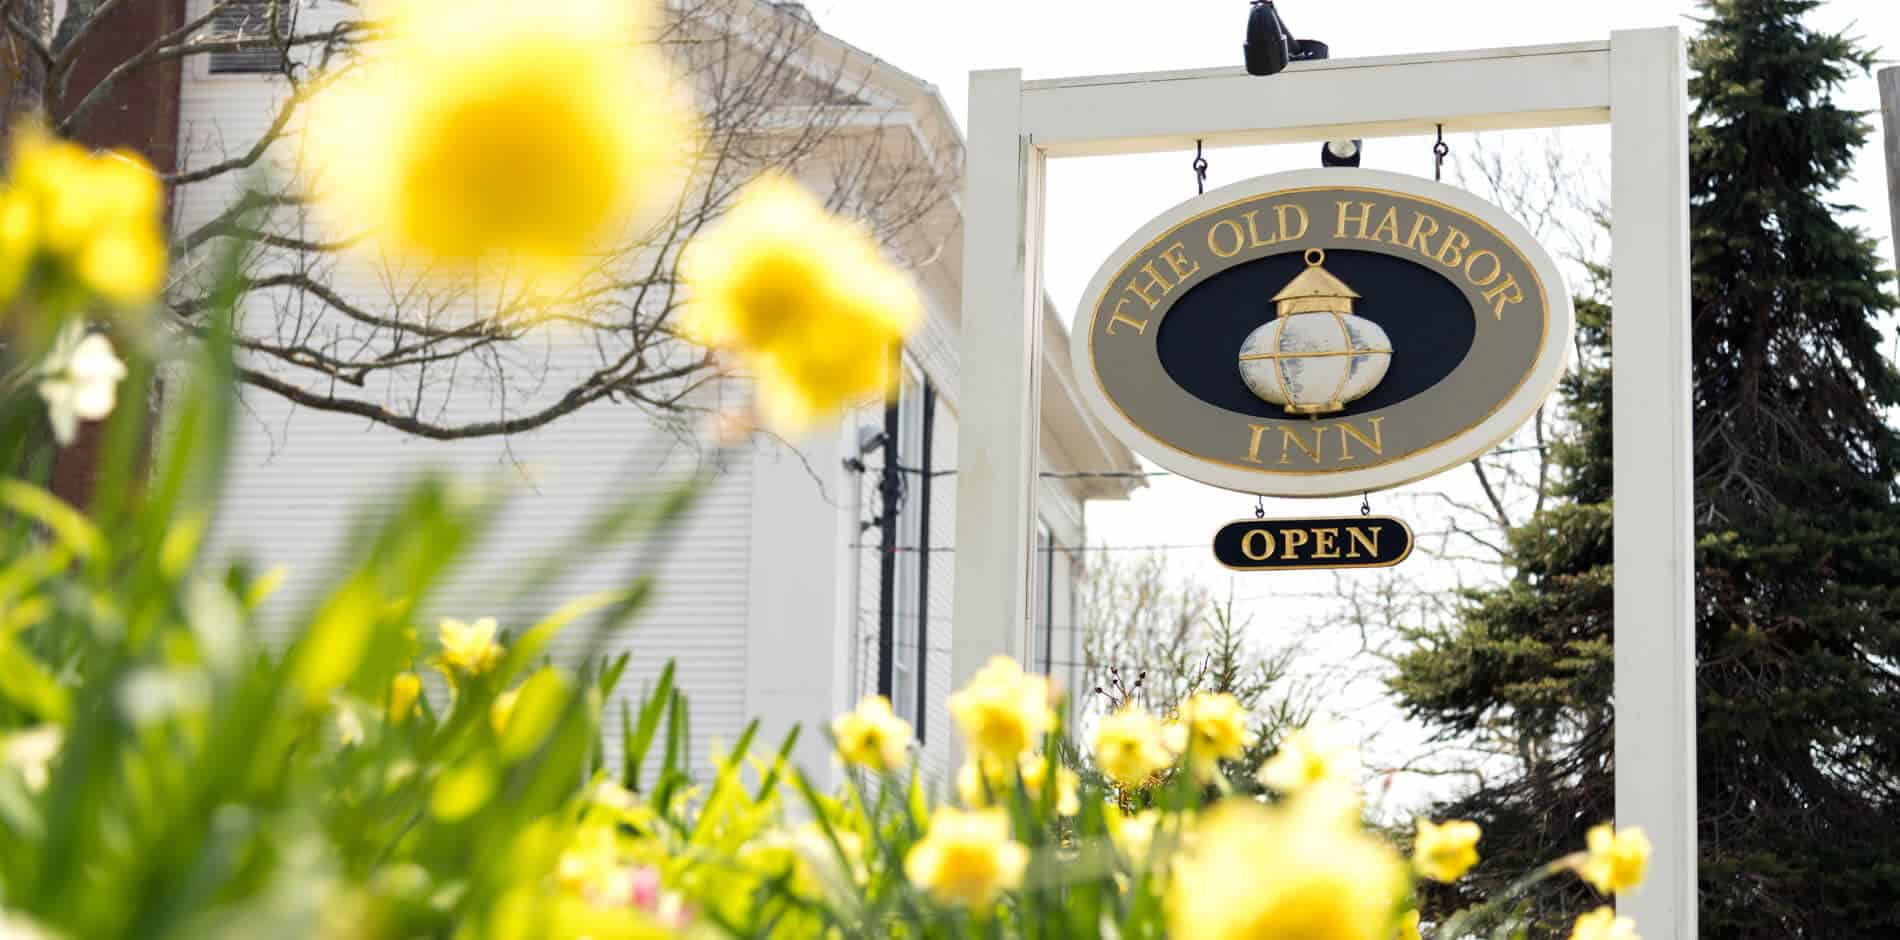 Large outdoor sign with hanging oval sign trimmed in gold that says The Old Harbor Inn Open